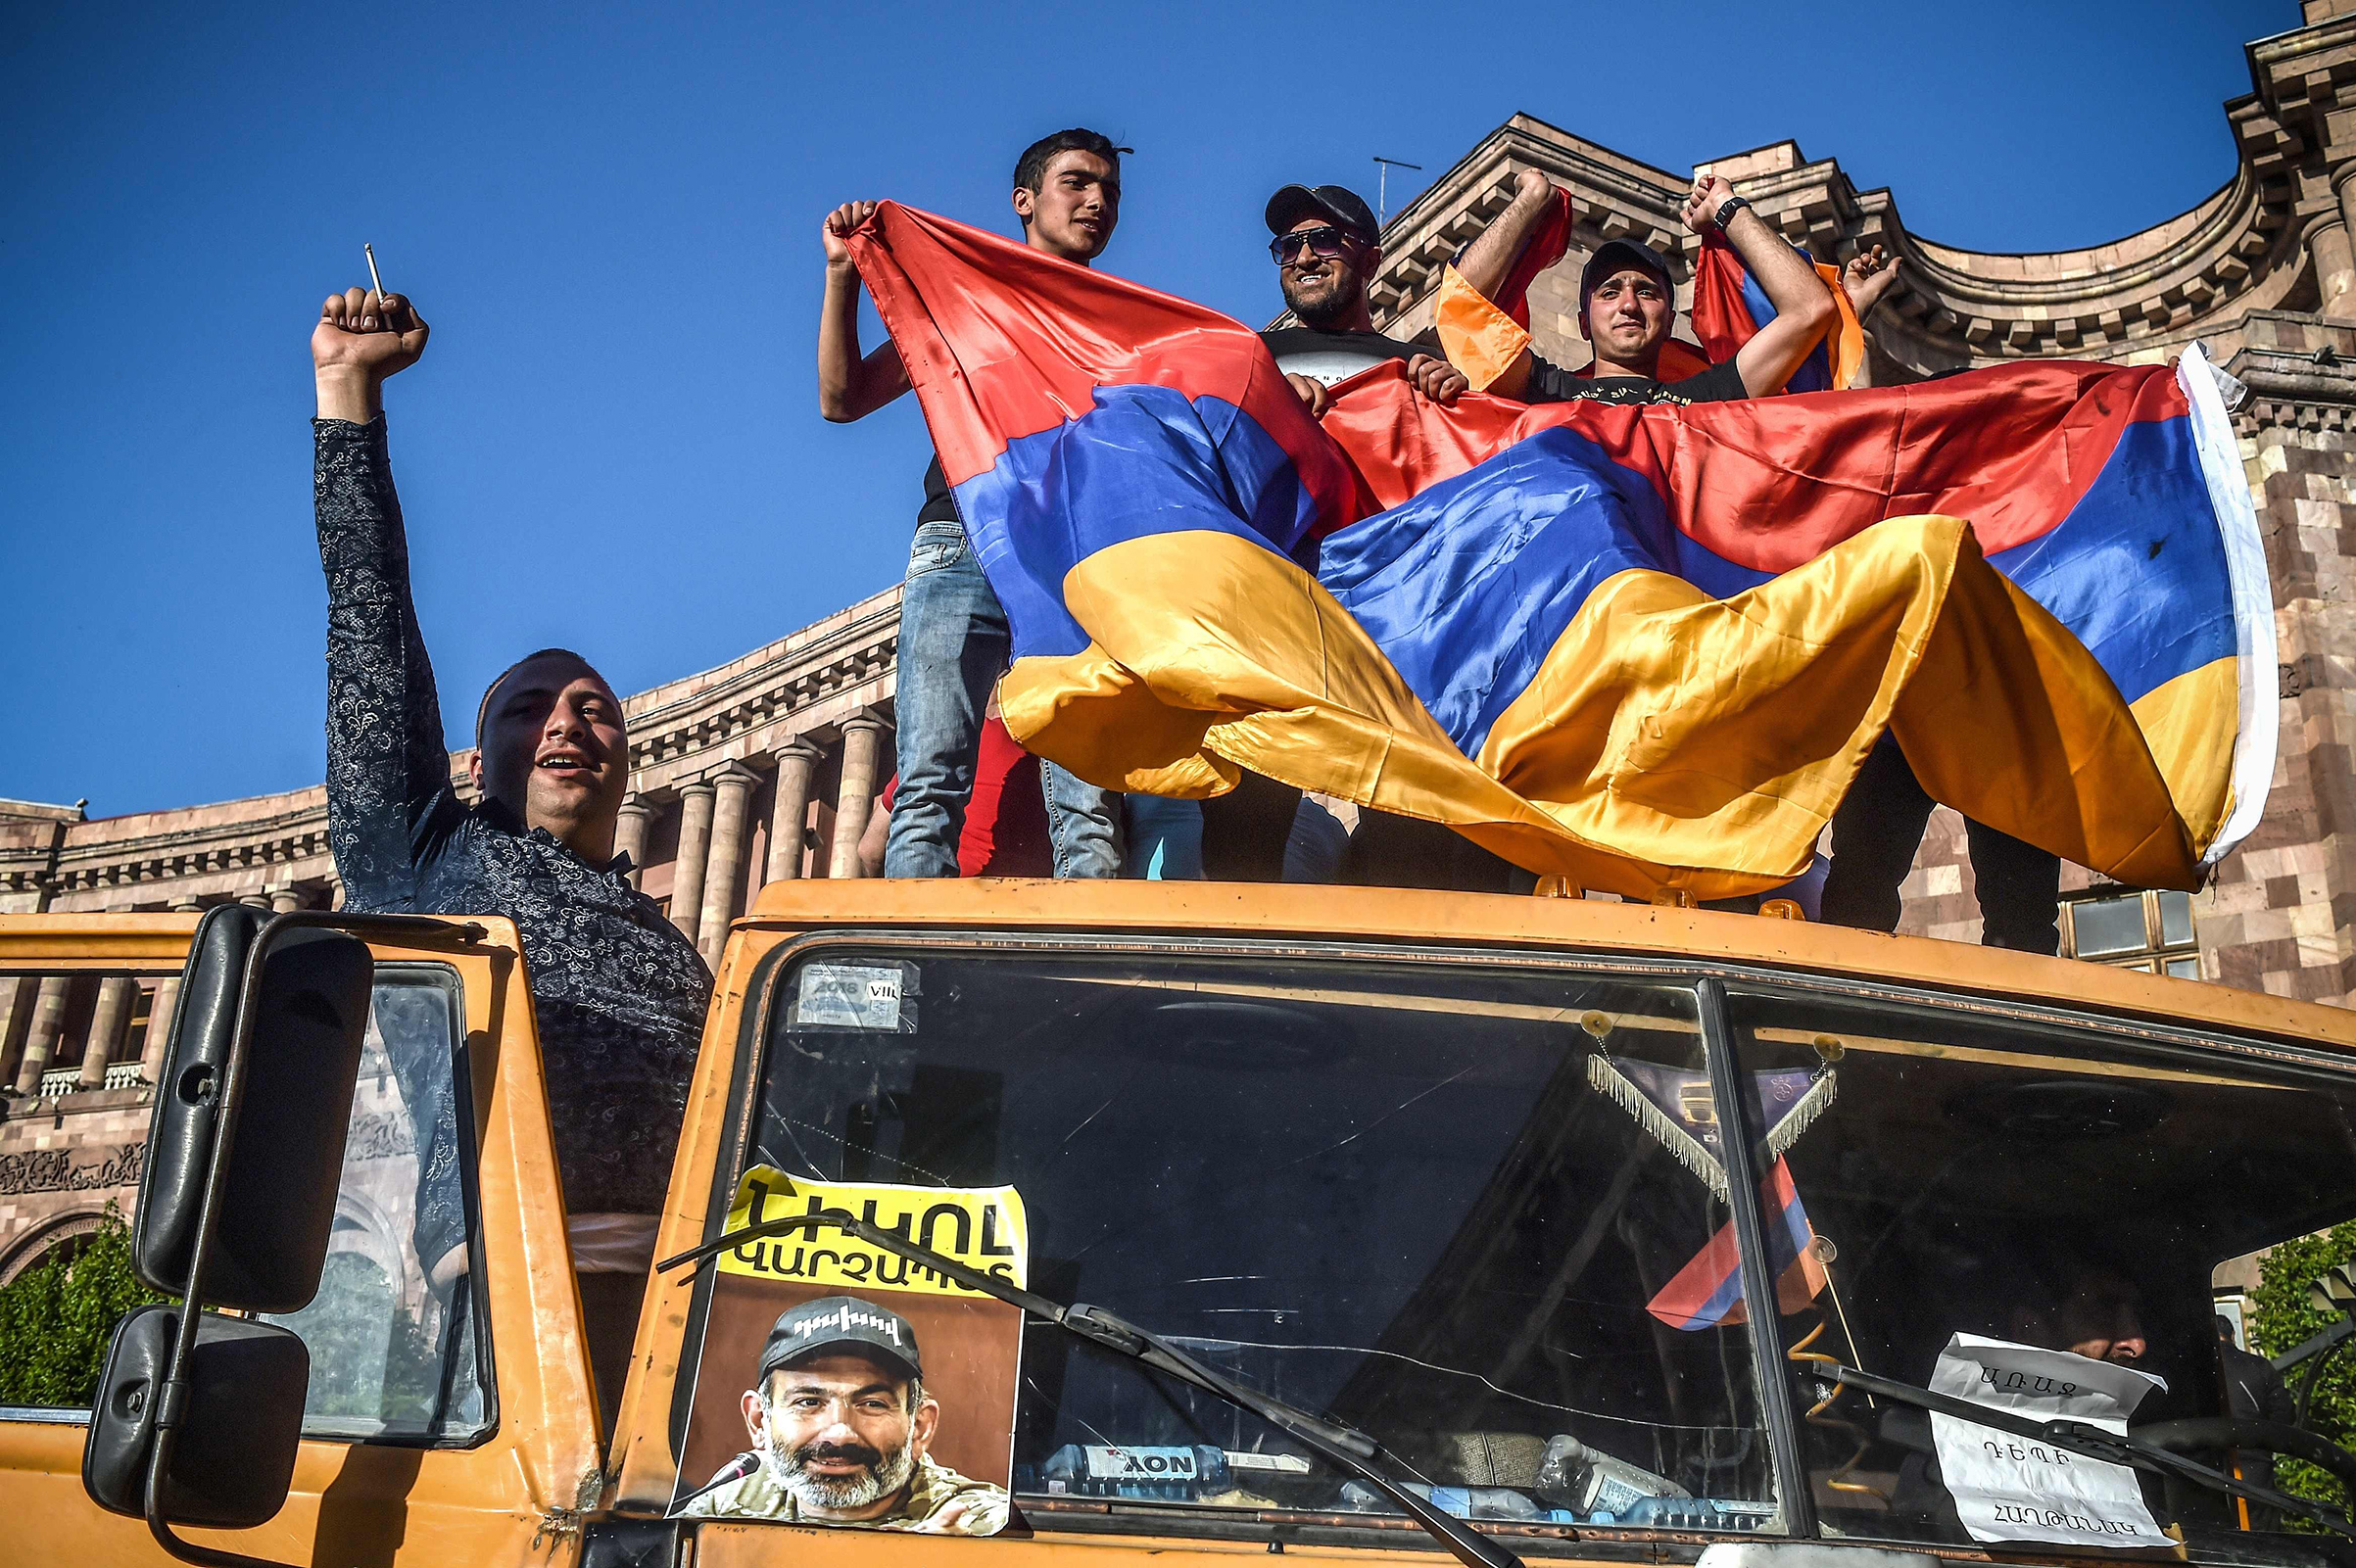 Protesters in Yerevan on May 2 wave the Armenian flag from a truck displaying a photograph of opposition leader Nikol Pashinyan, who was appointed interim Prime Minister days later